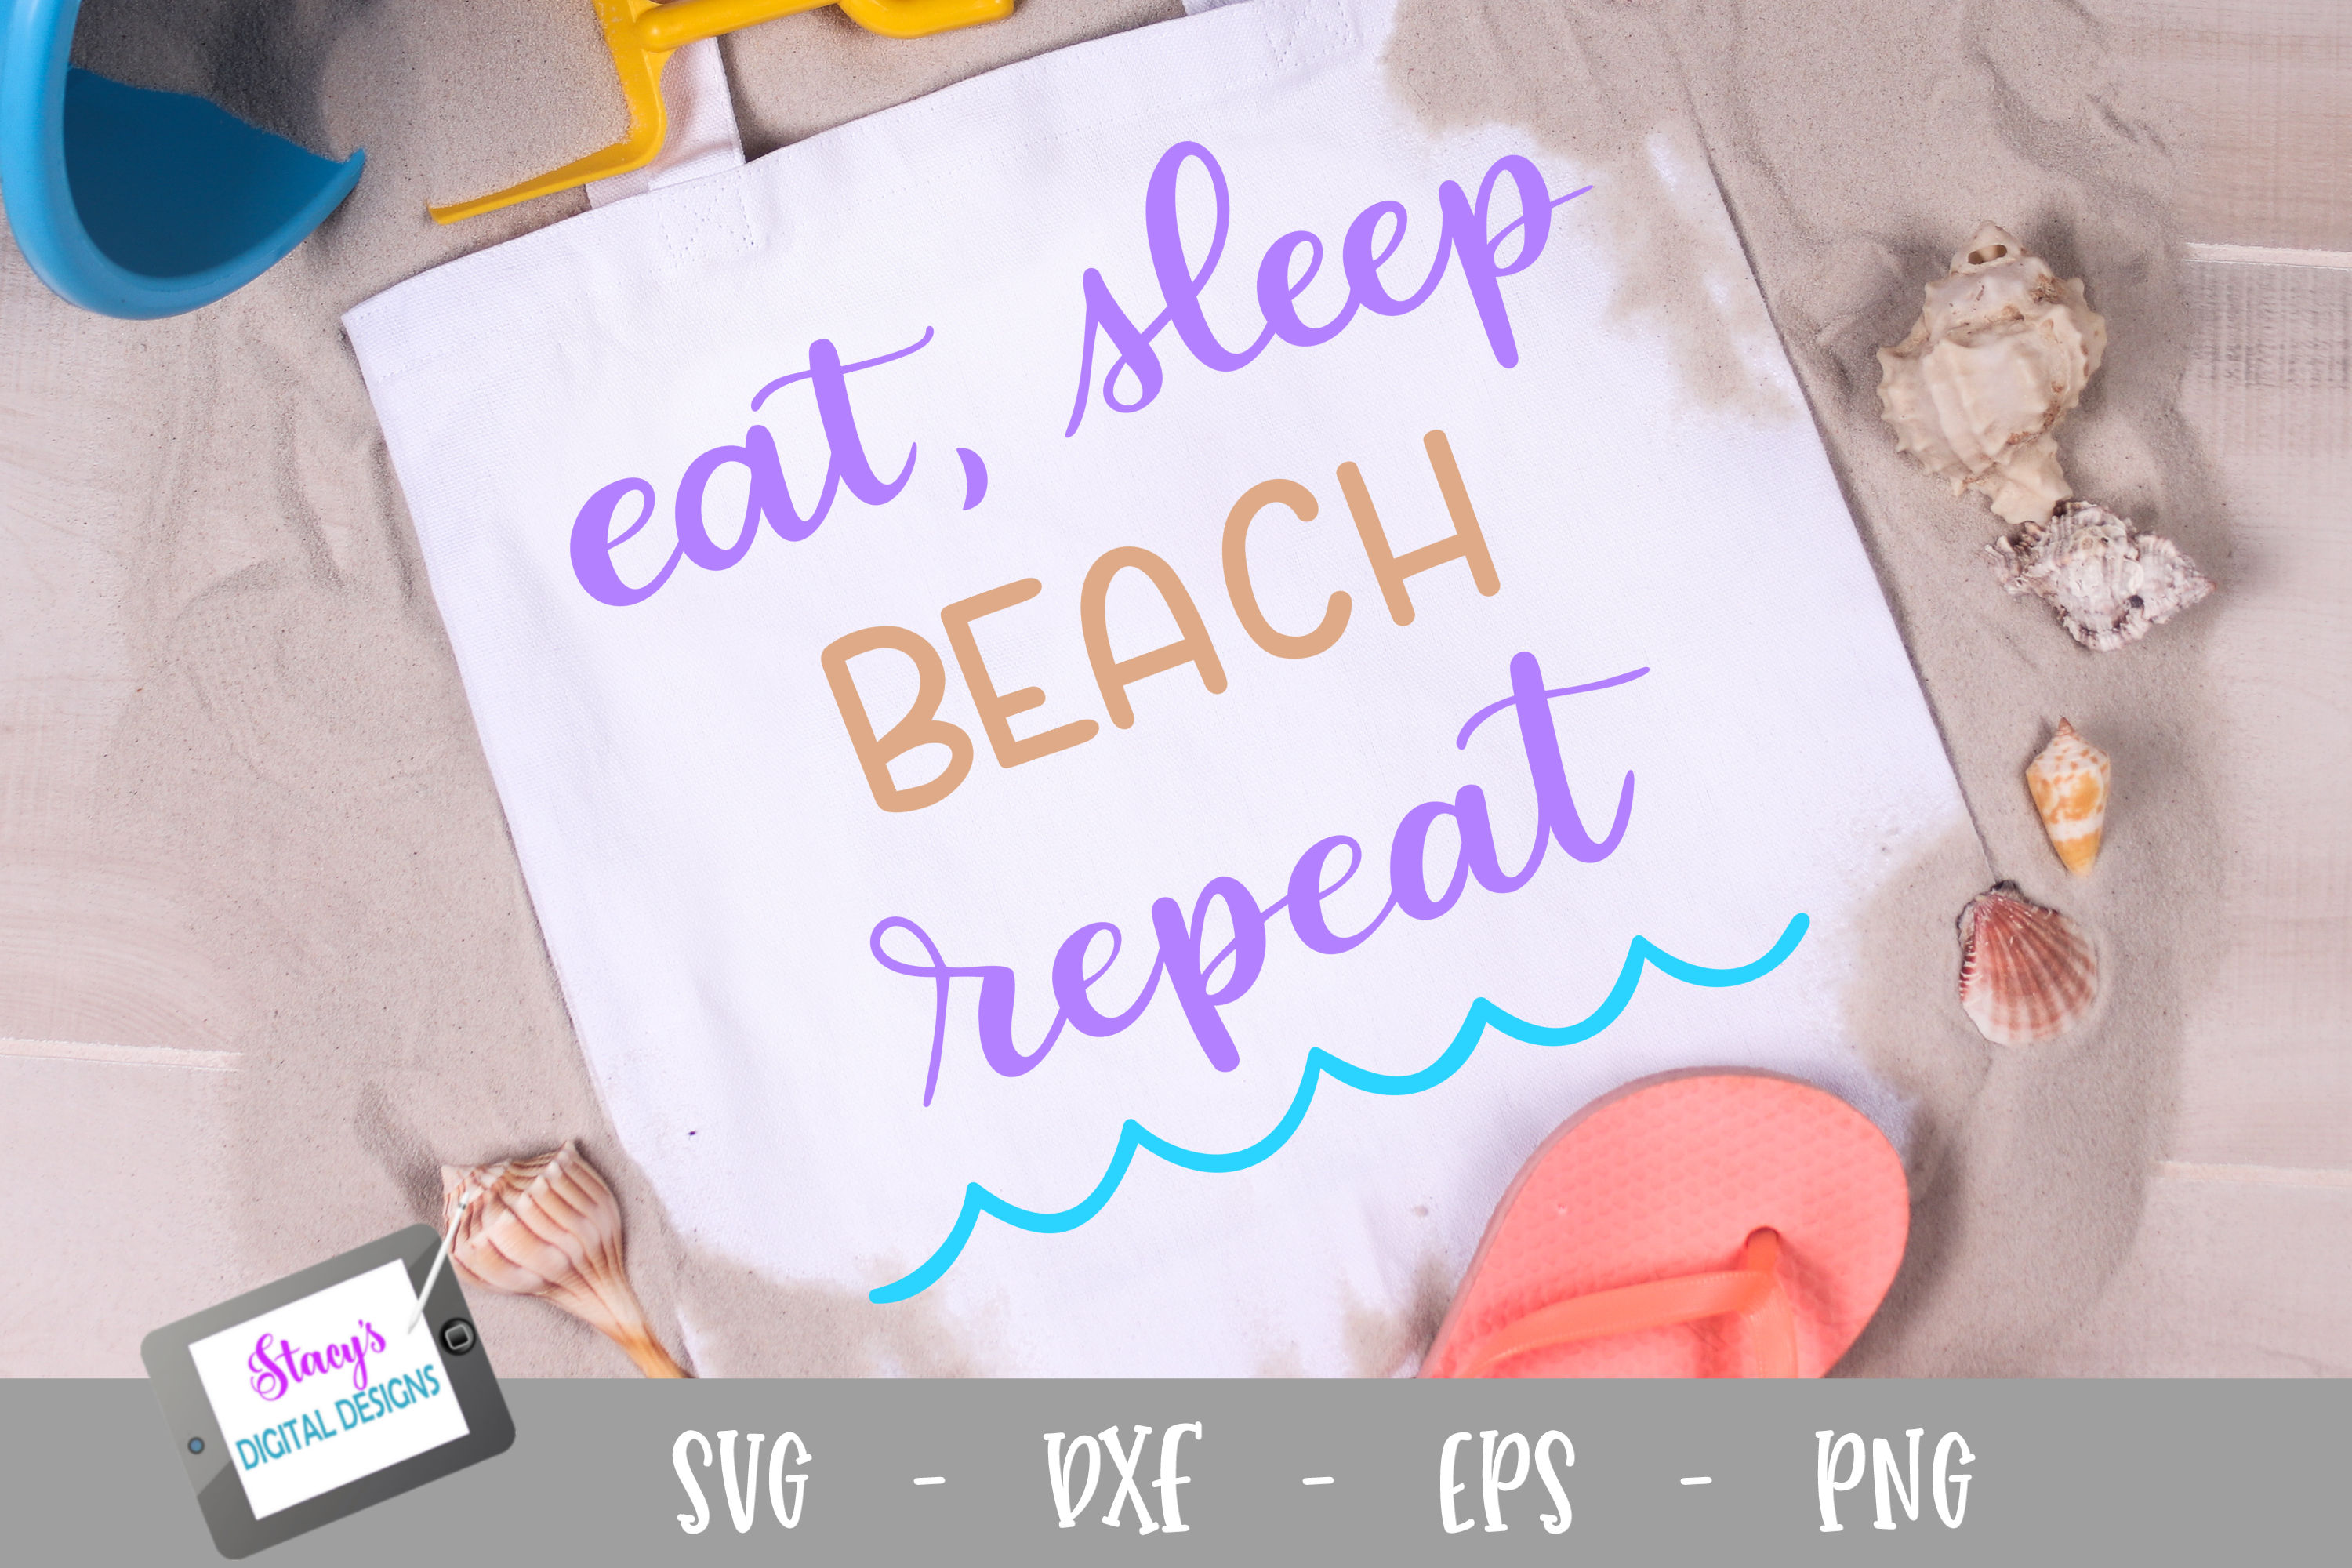 Download Free Eat Sleep Beach Repeat Graphic By Stacysdigitaldesigns for Cricut Explore, Silhouette and other cutting machines.